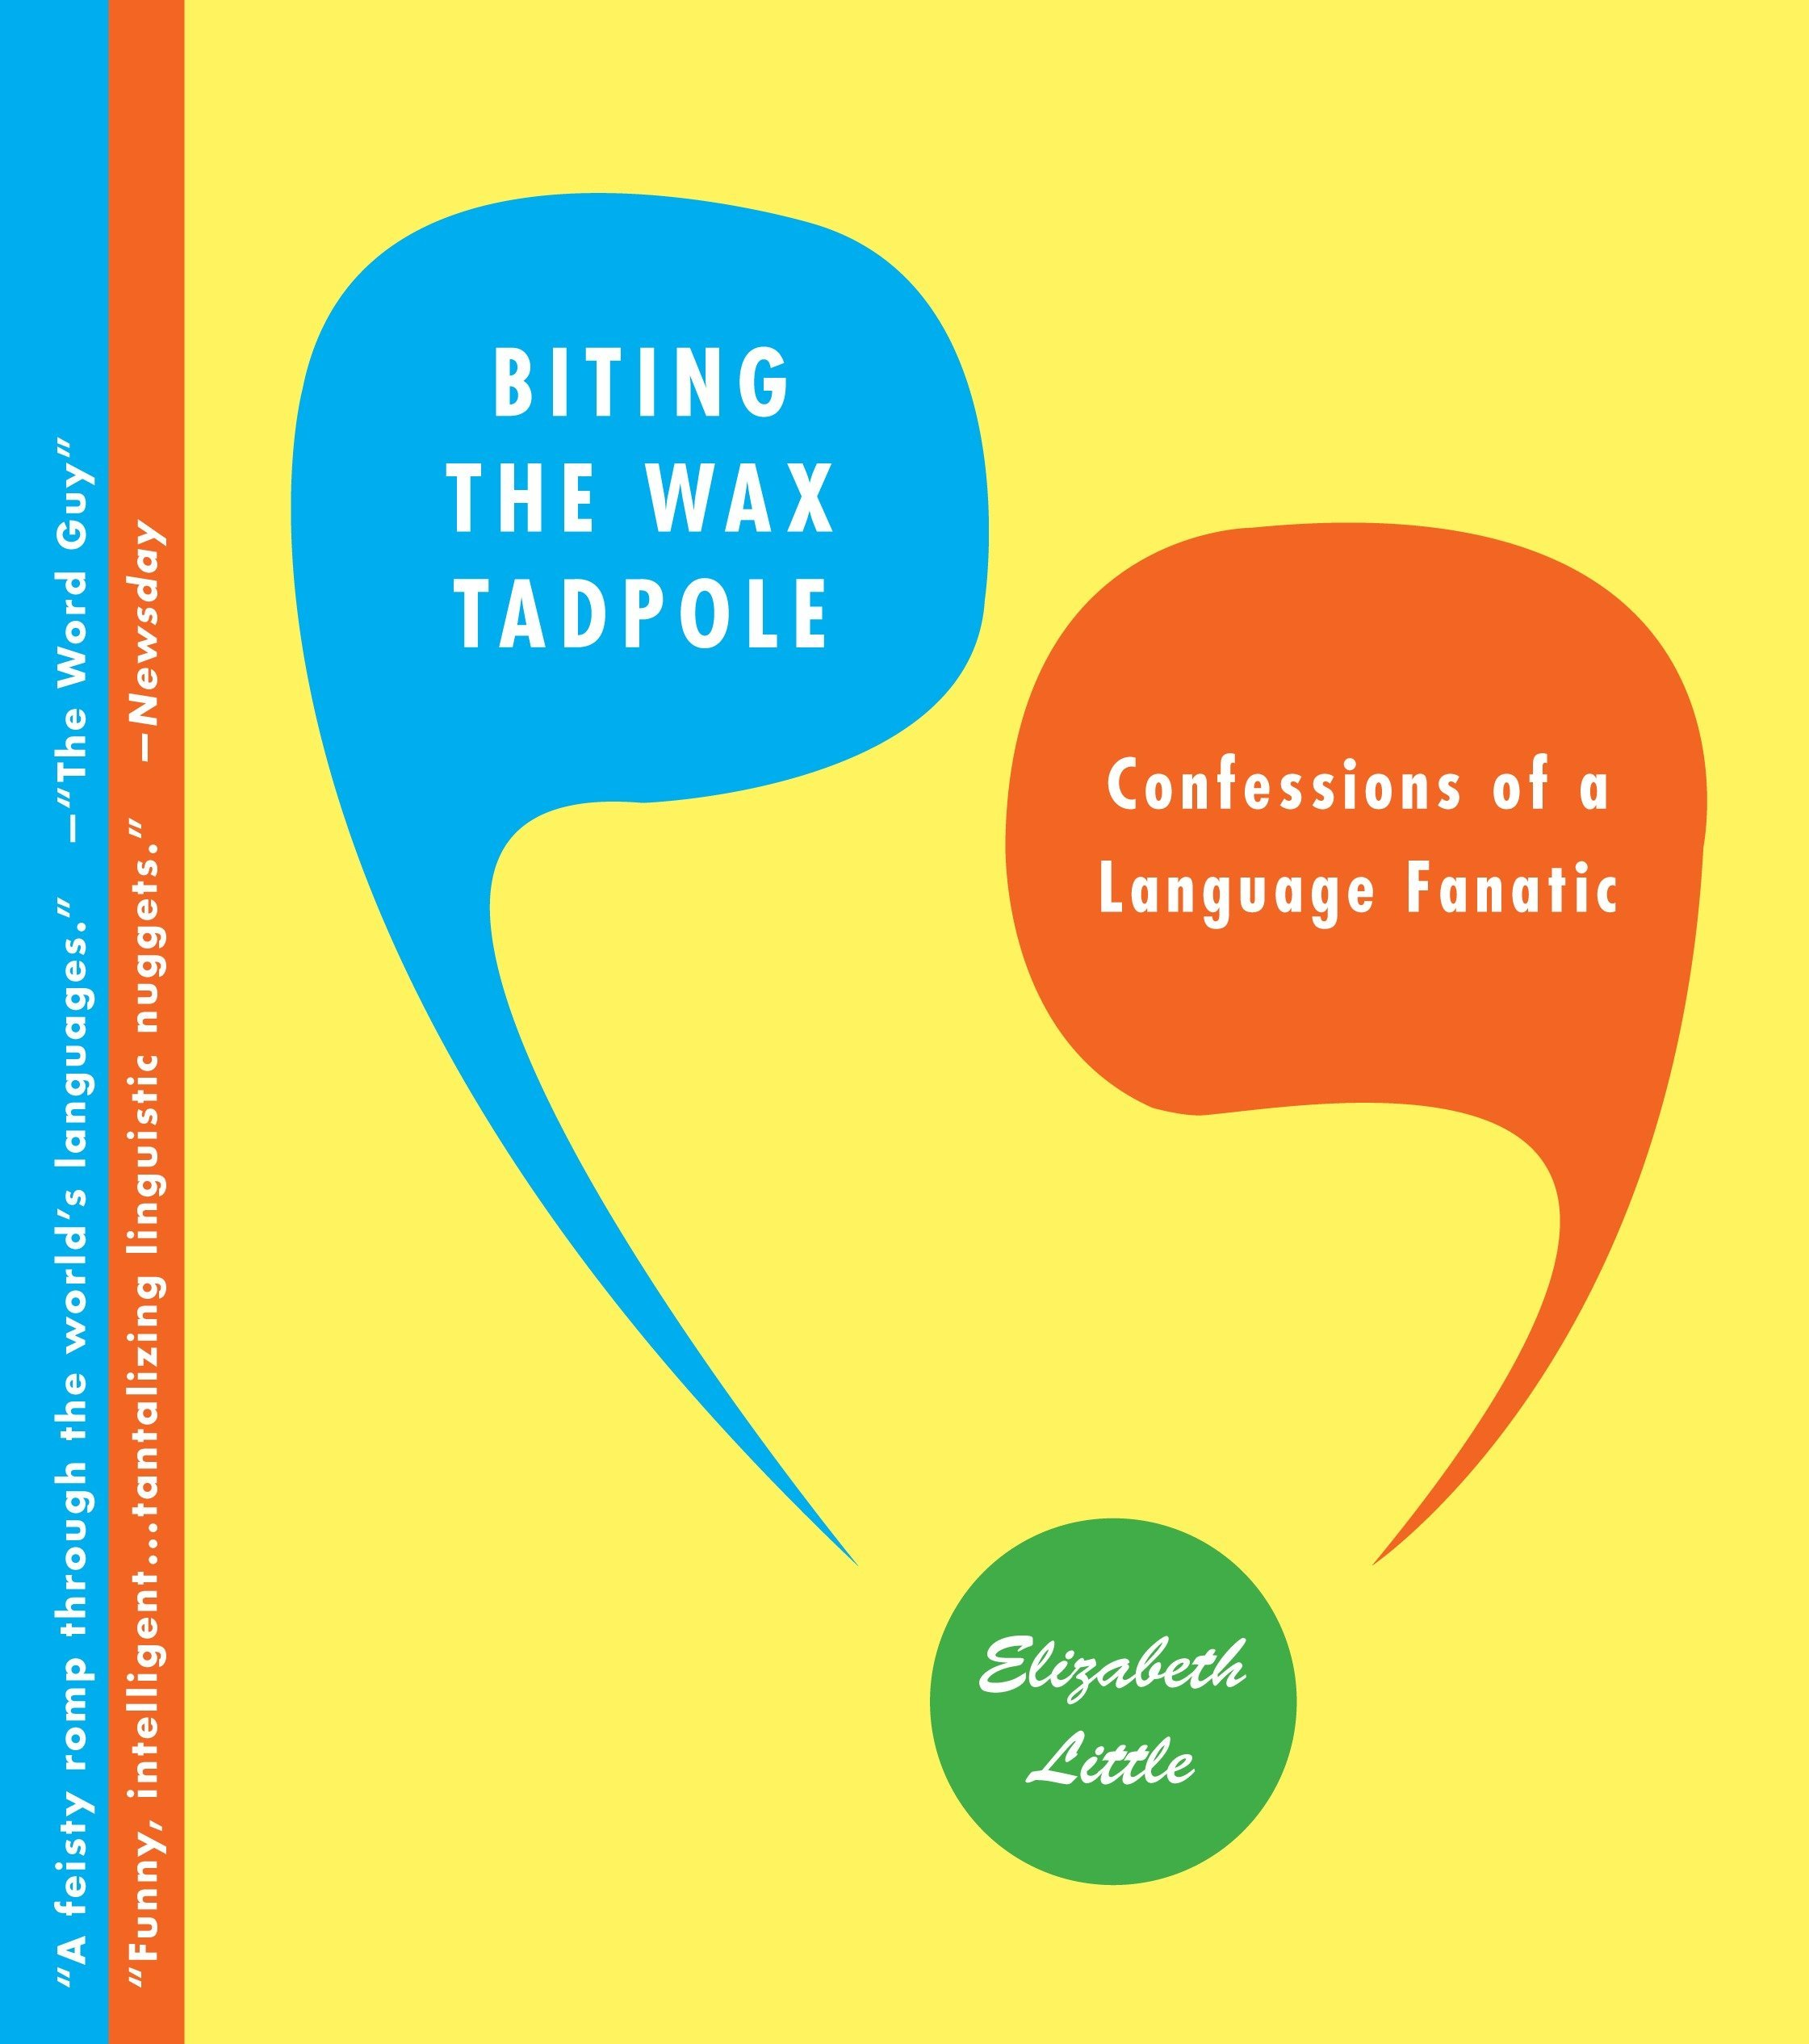 Biting the Wax Tadpole: Confessions of a Language Fanatic by Little, Elizabeth